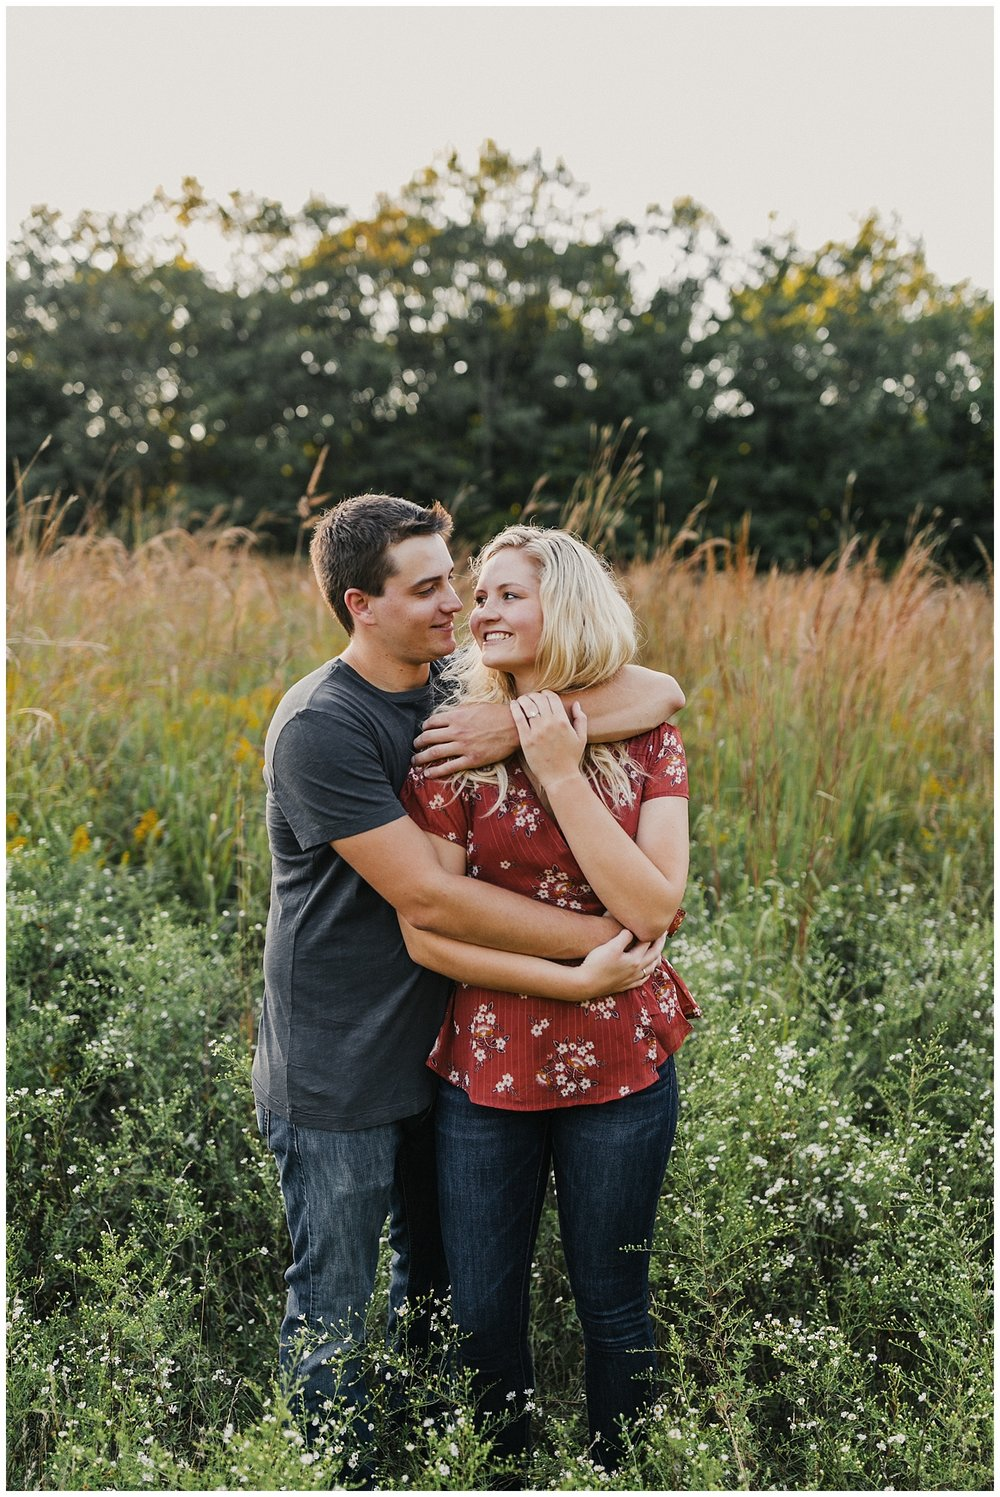 lindybeth photography - engagement pictures - lily derek-175.jpg